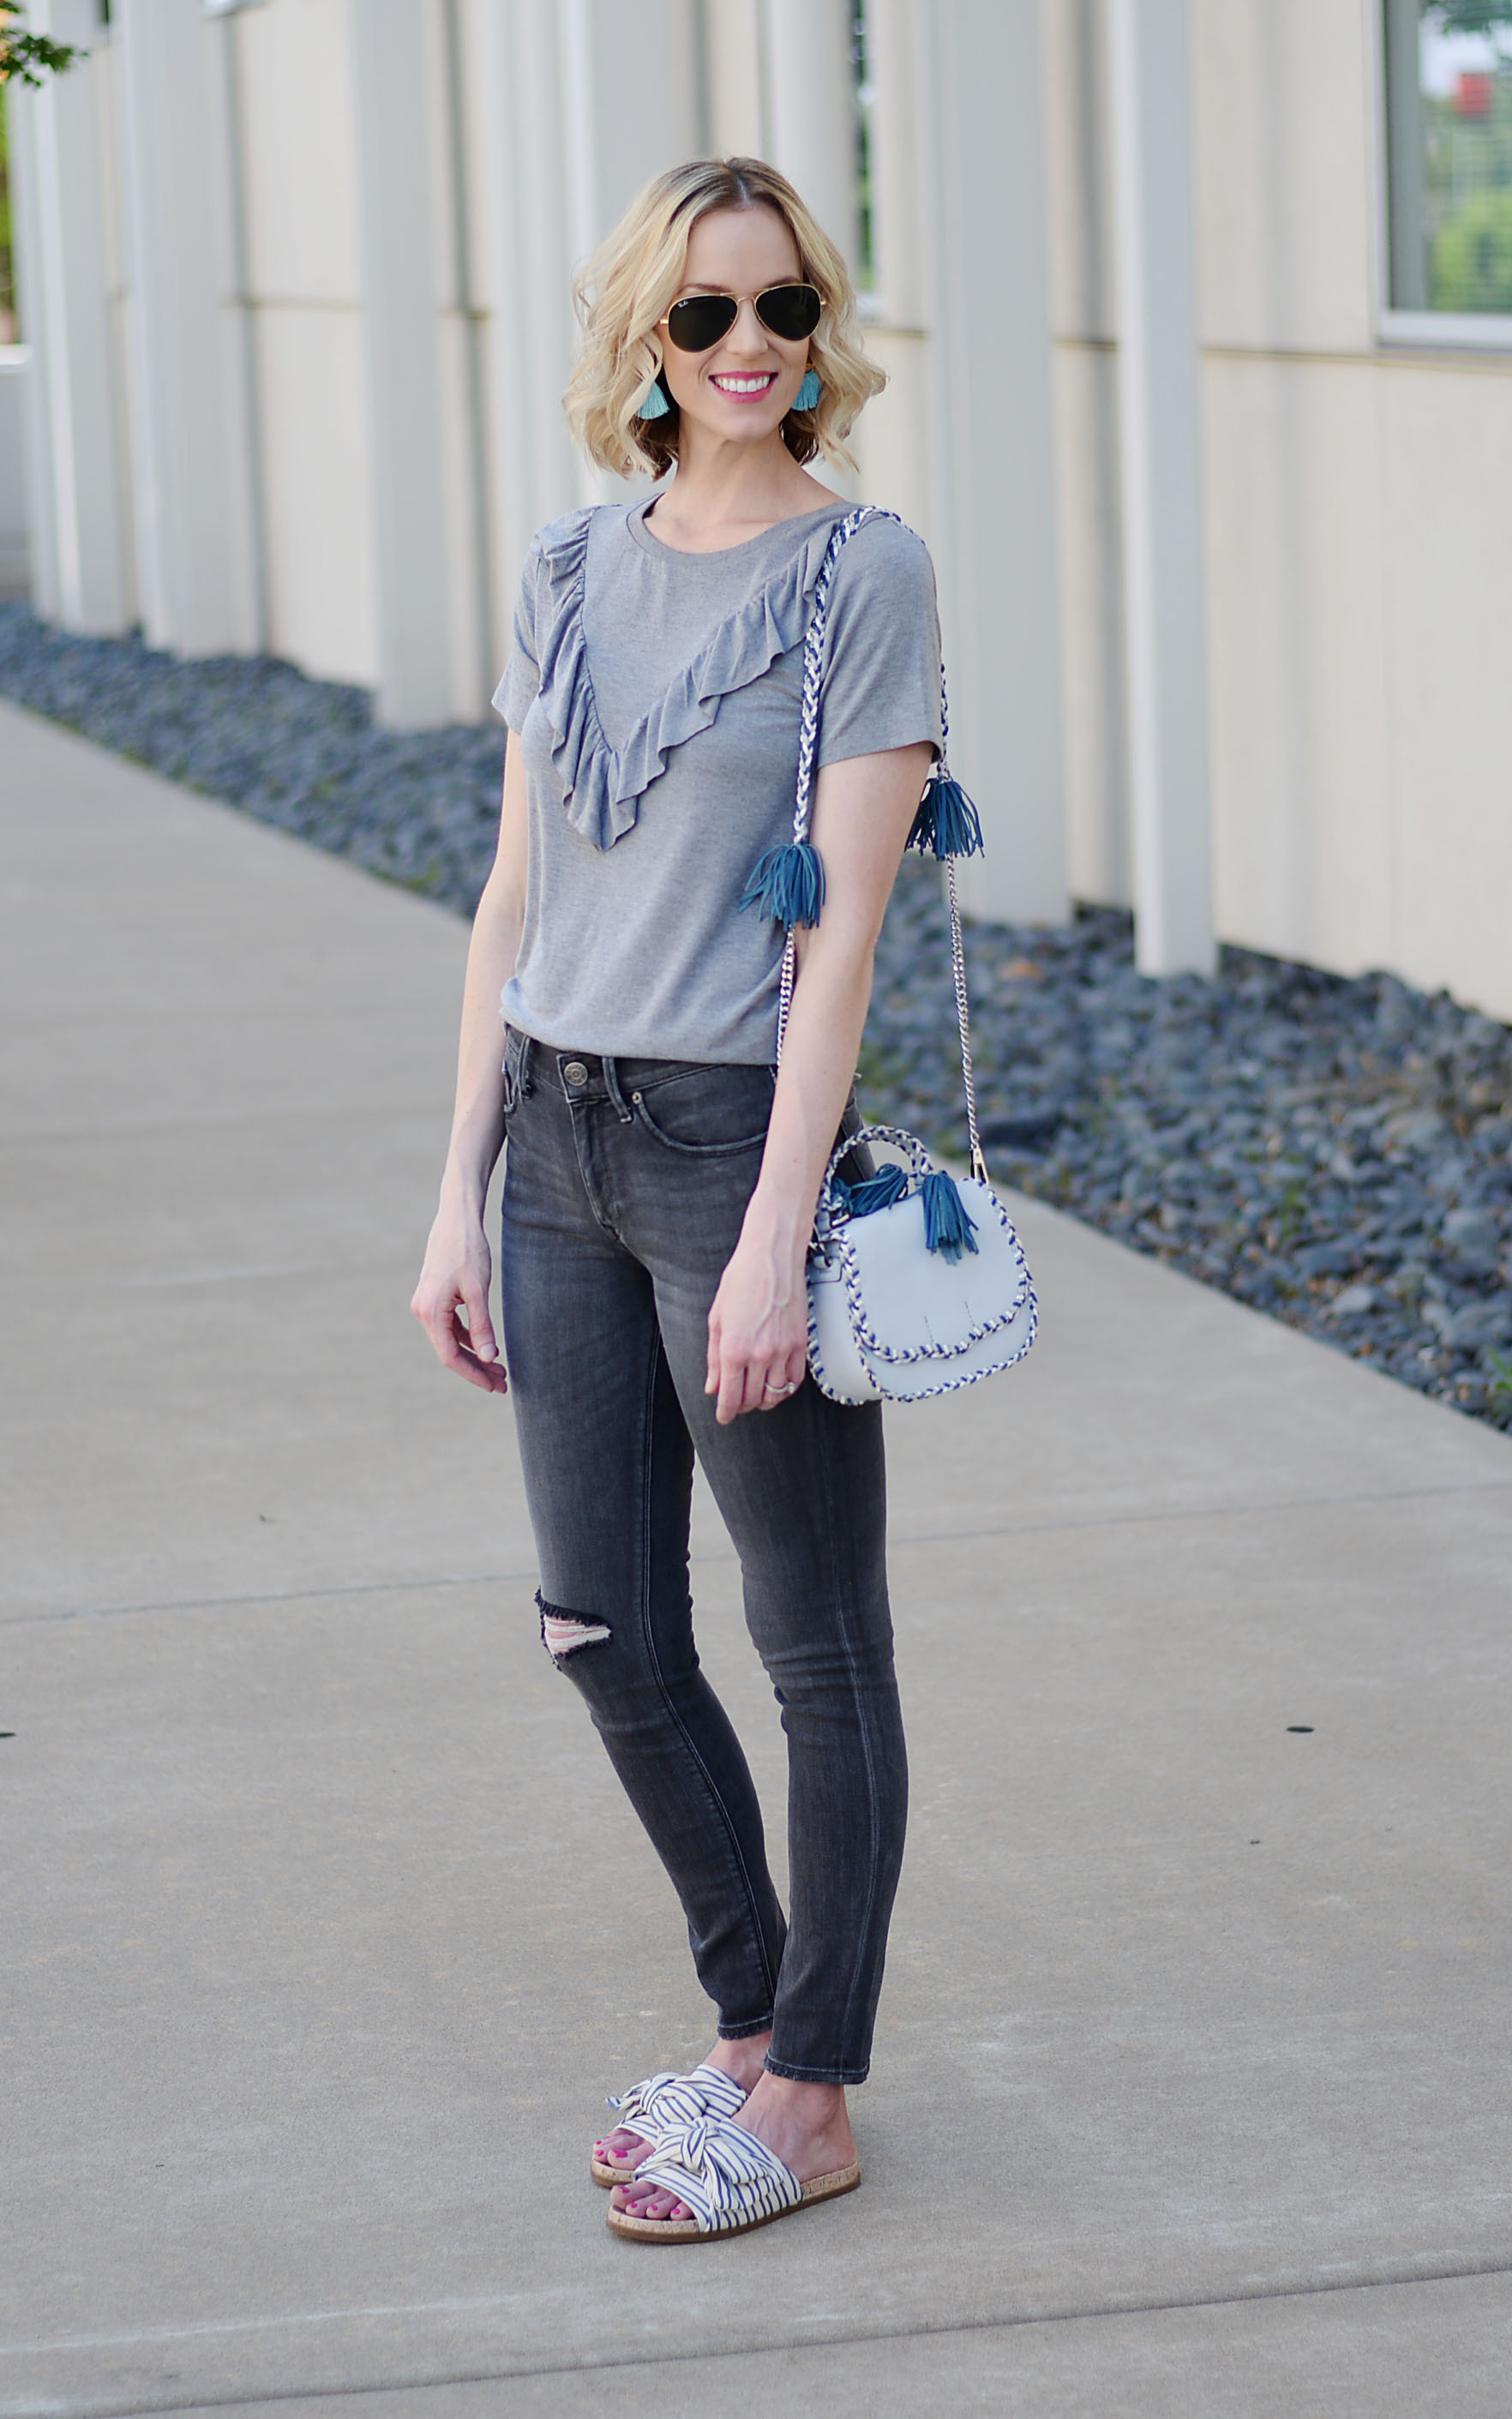 37157d55ec6 Monochrome Grey Casual Outfit - Straight A Style